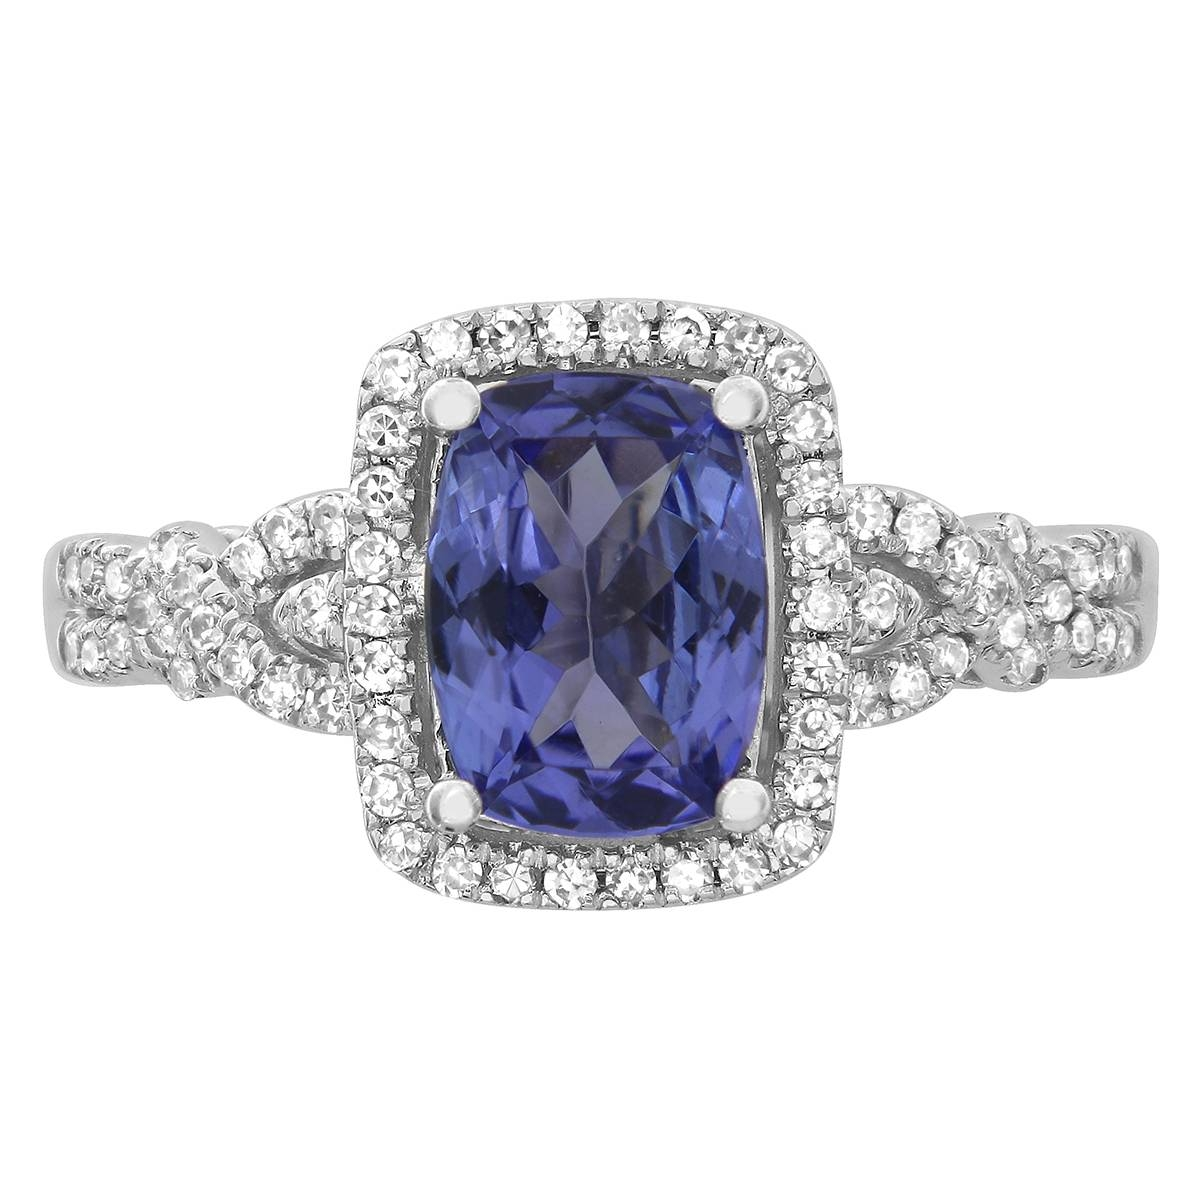 10K White Gold Cushion Cut Tanzanite And Diamond Engagement Ring For Diamond Tanzanite Engagement Rings (View 3 of 15)